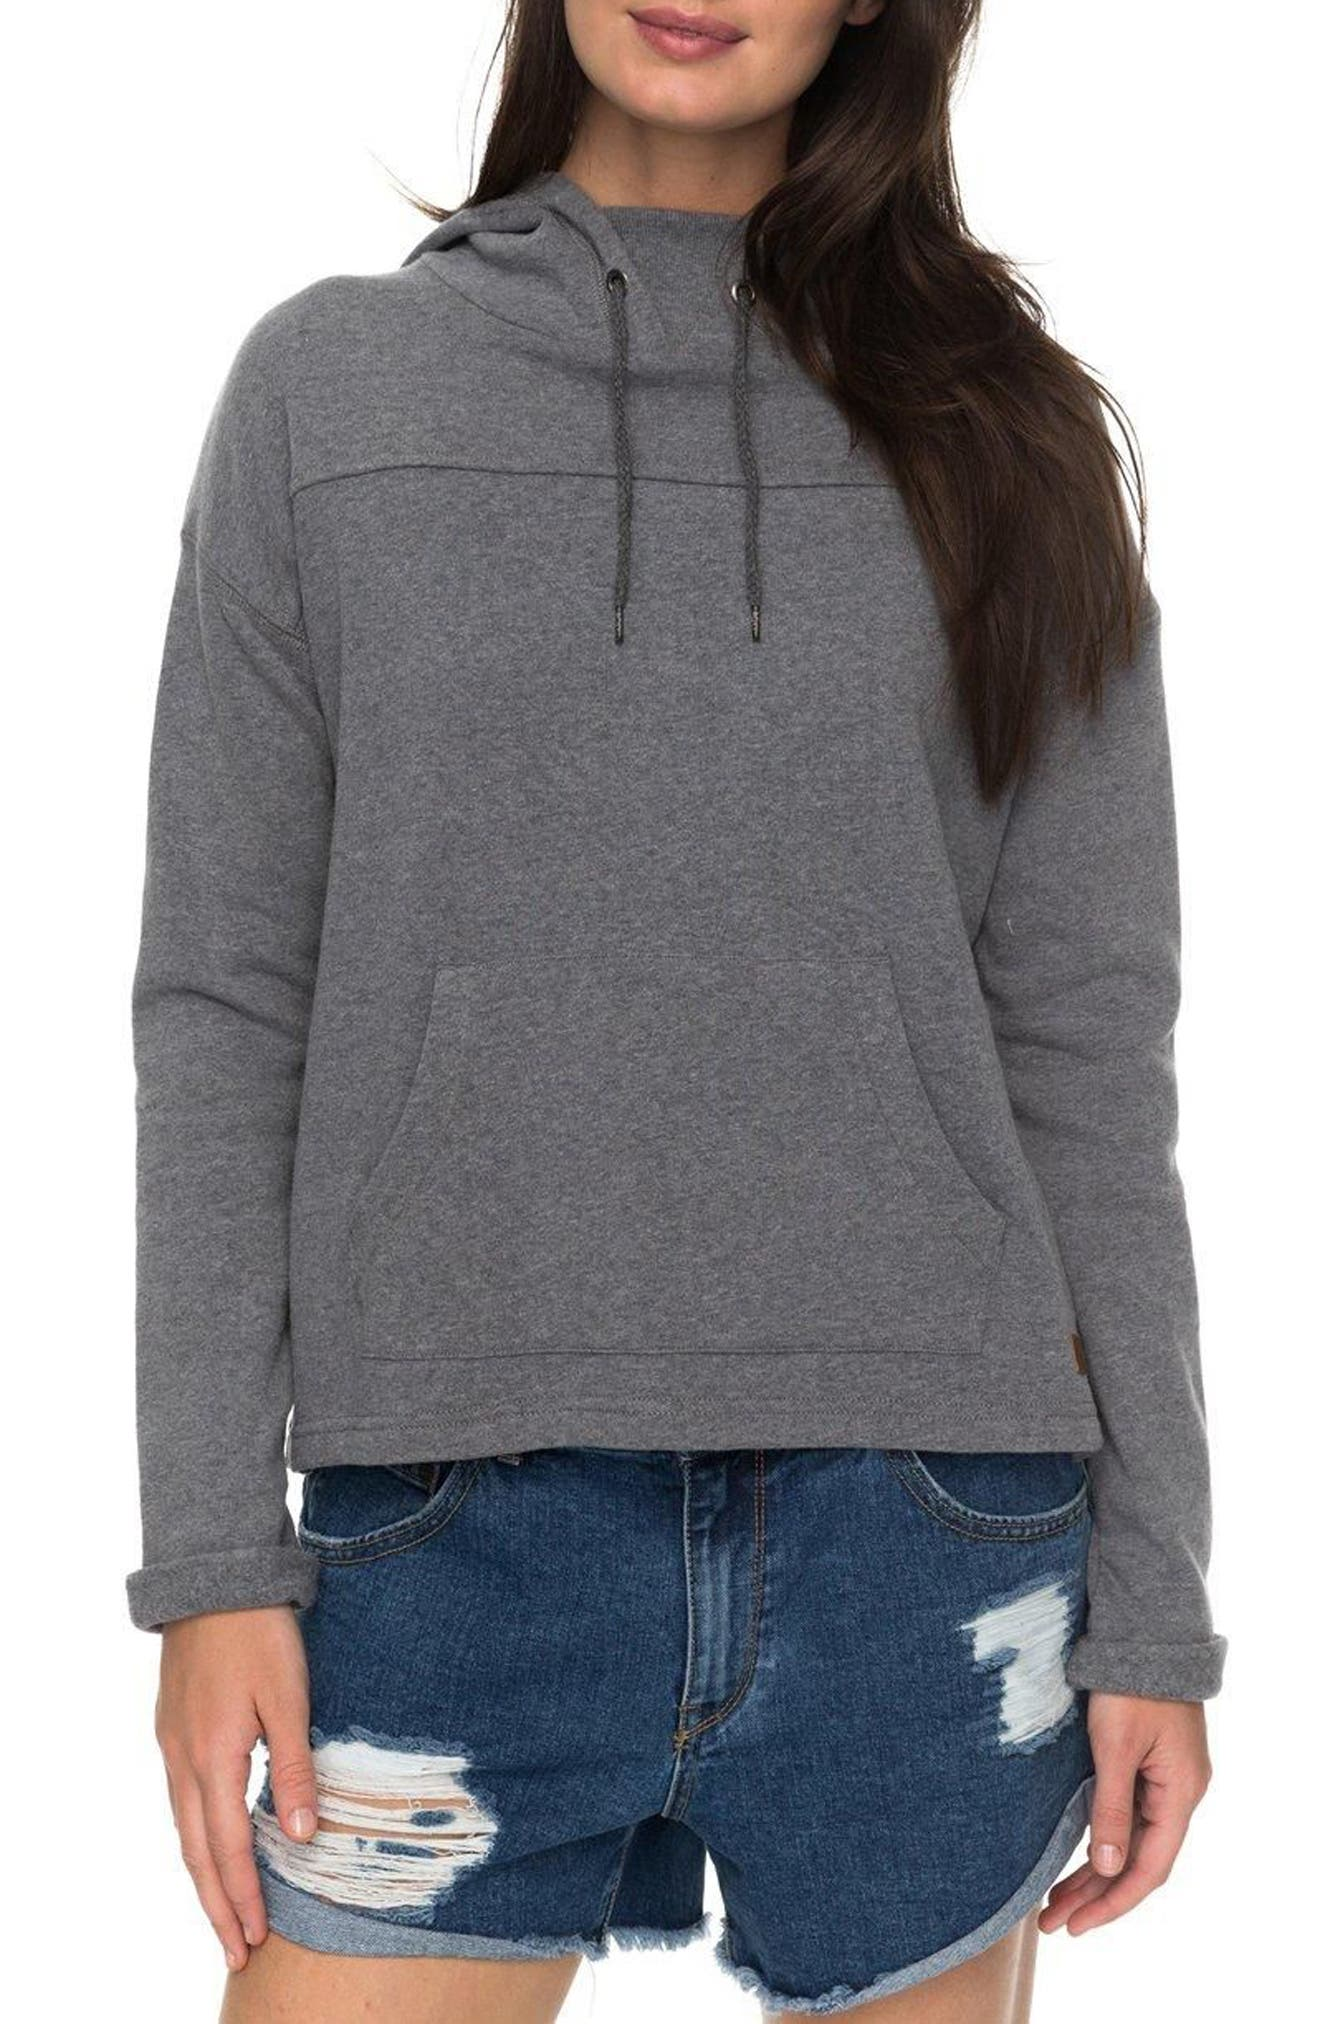 Coasting Ahead Hoodie,                             Main thumbnail 1, color,                             Charcoal Heather